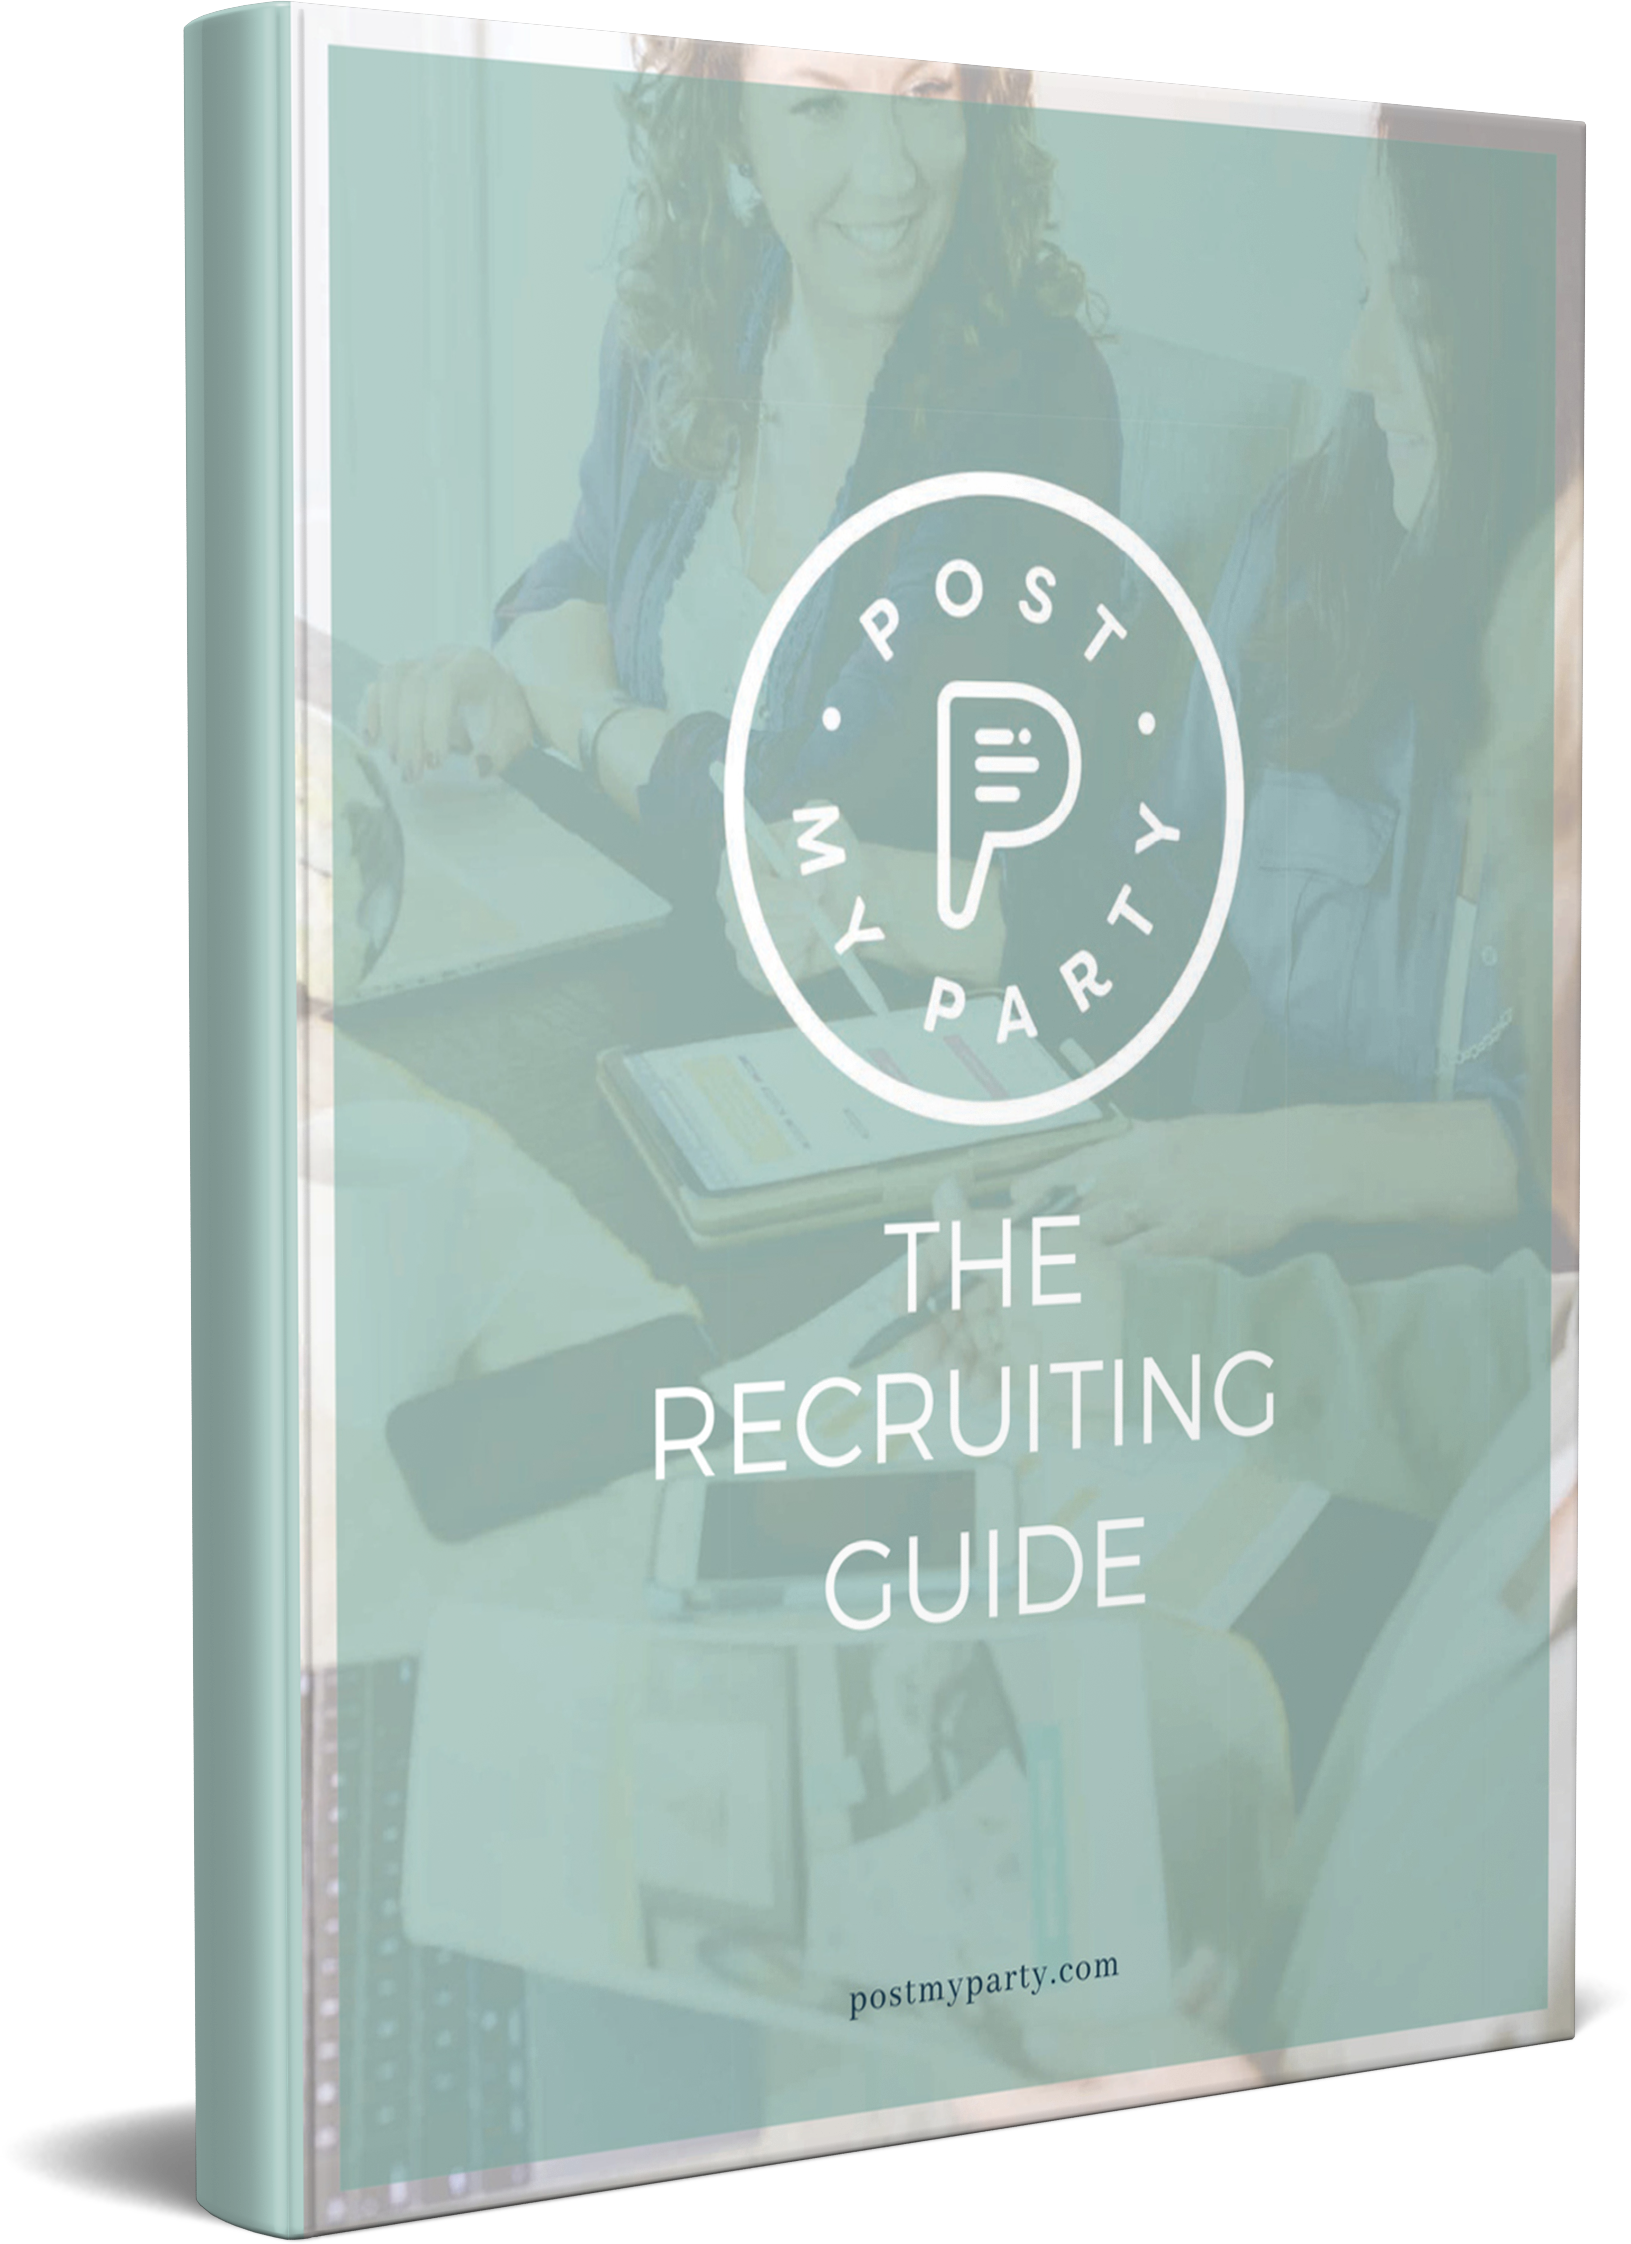 The Recruiting Guide